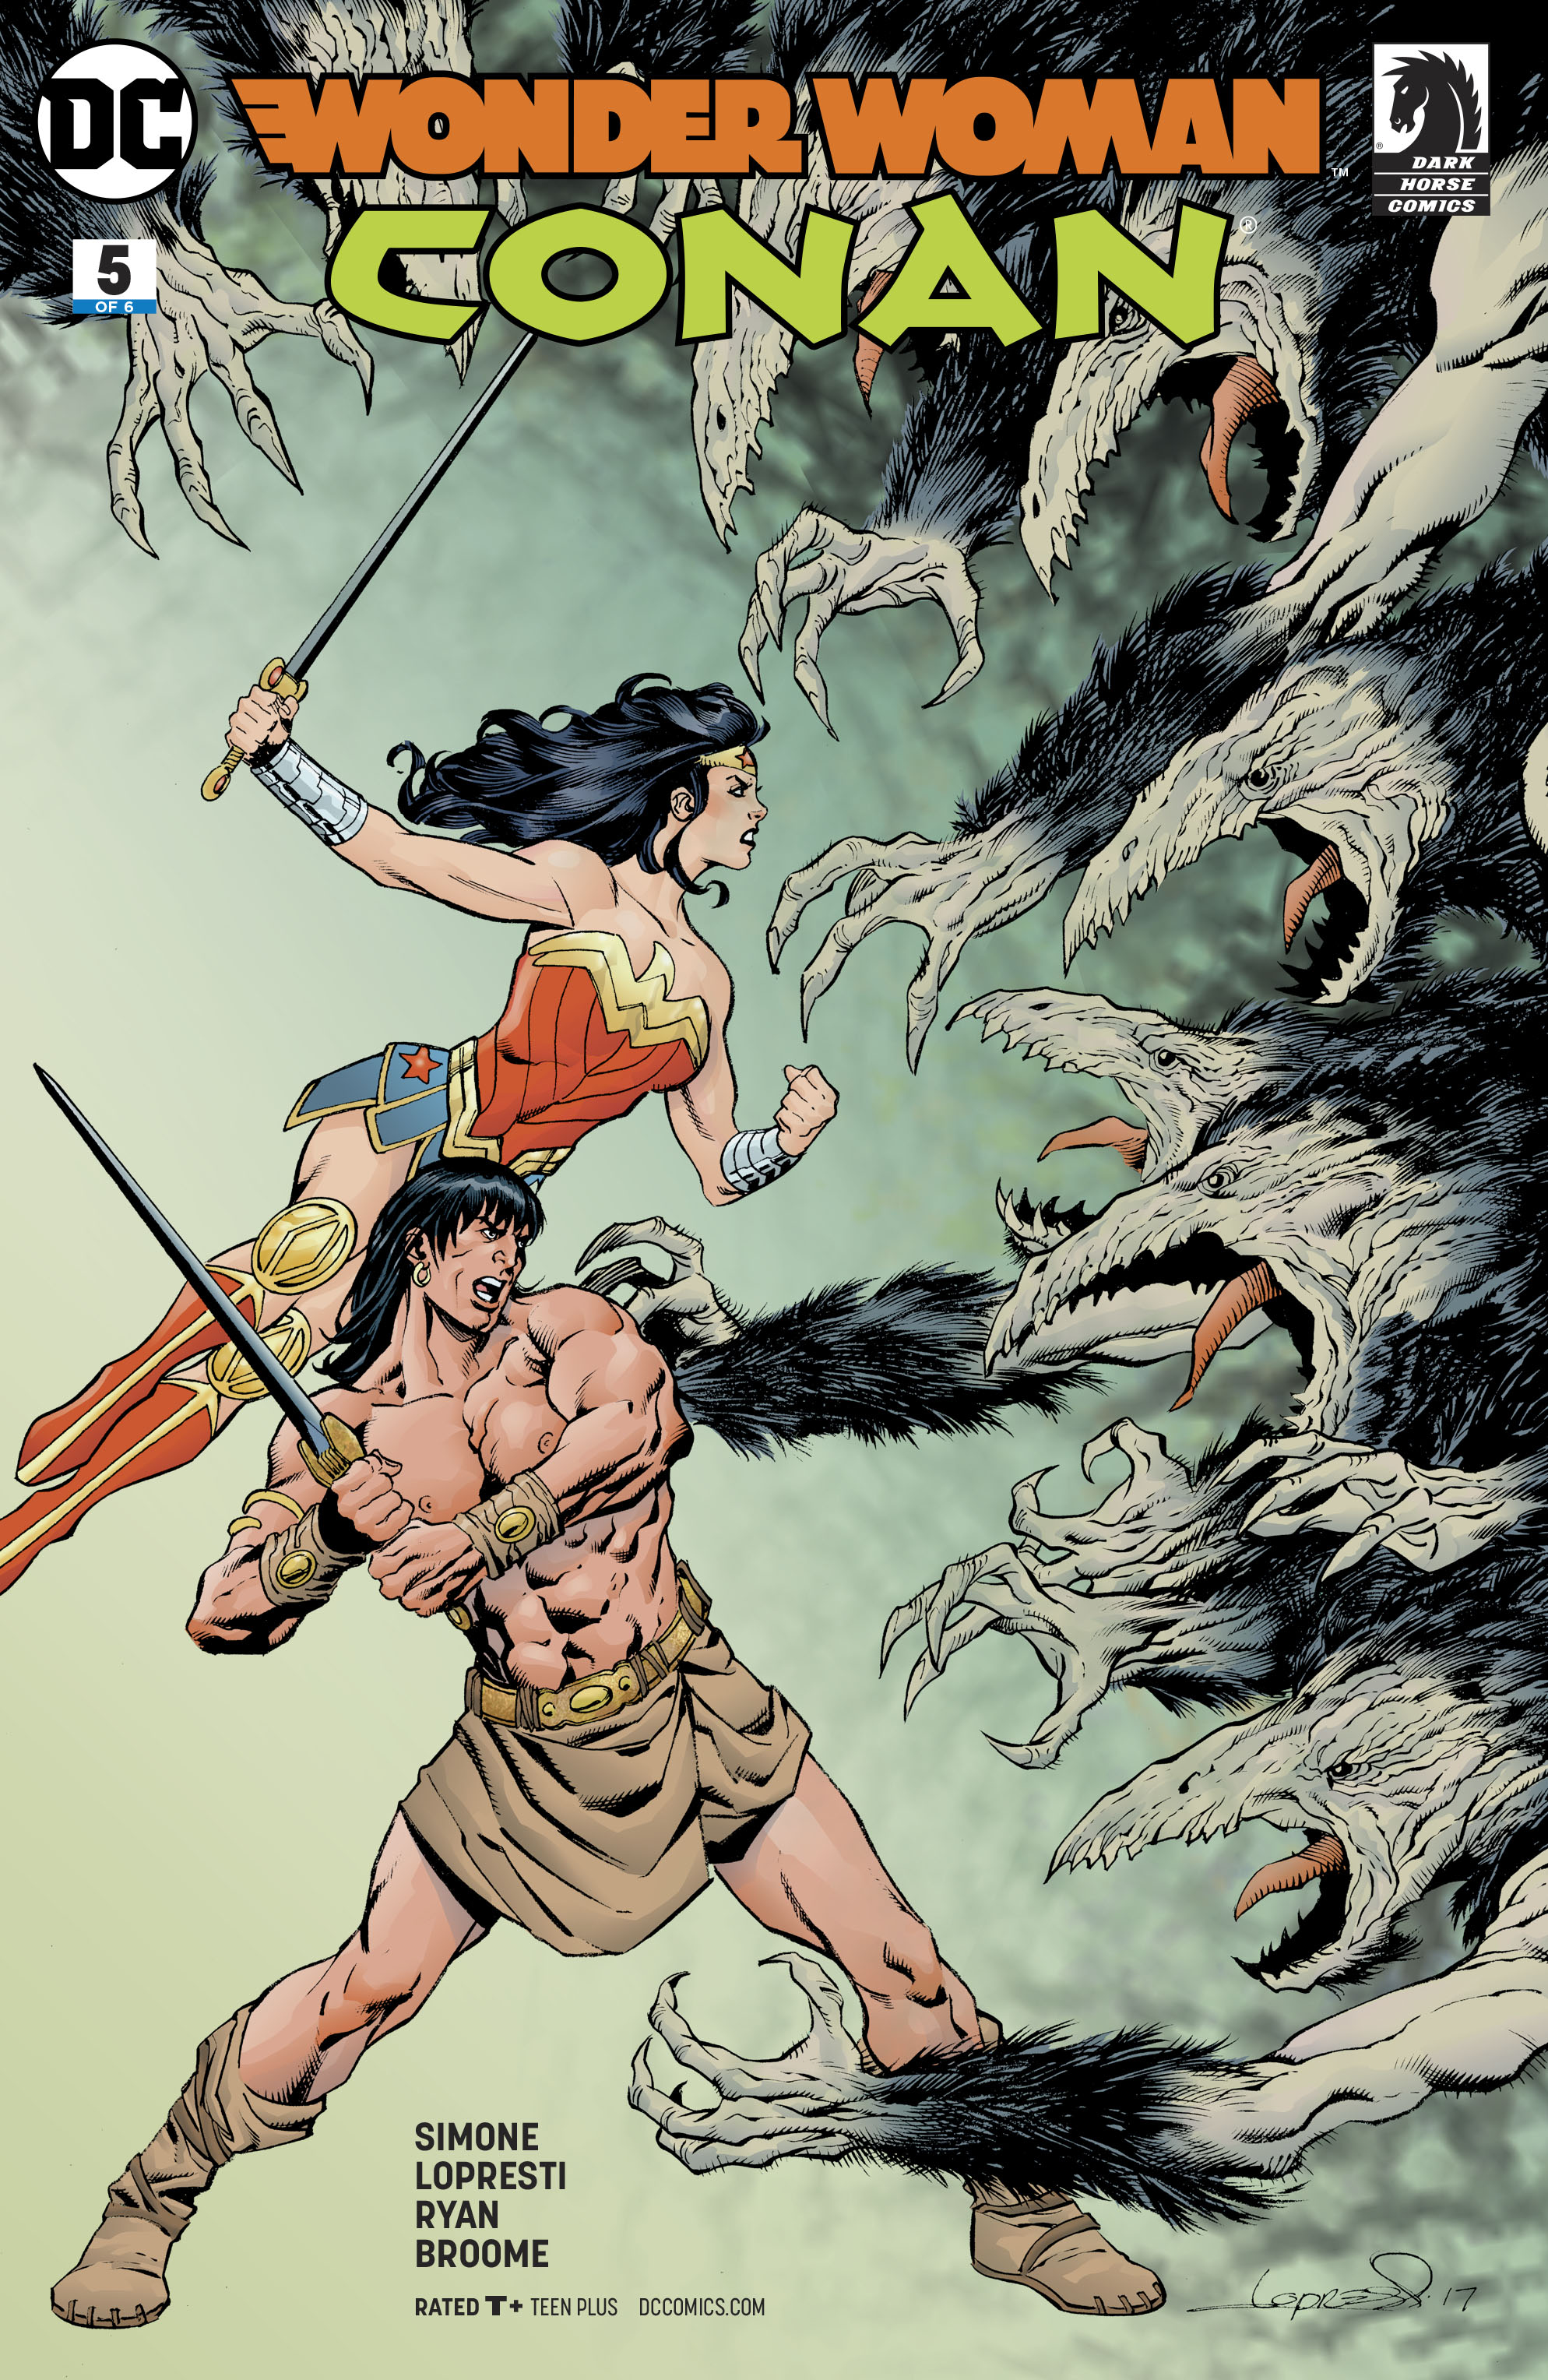 WONDER WOMAN CONAN #5 (OF 6)